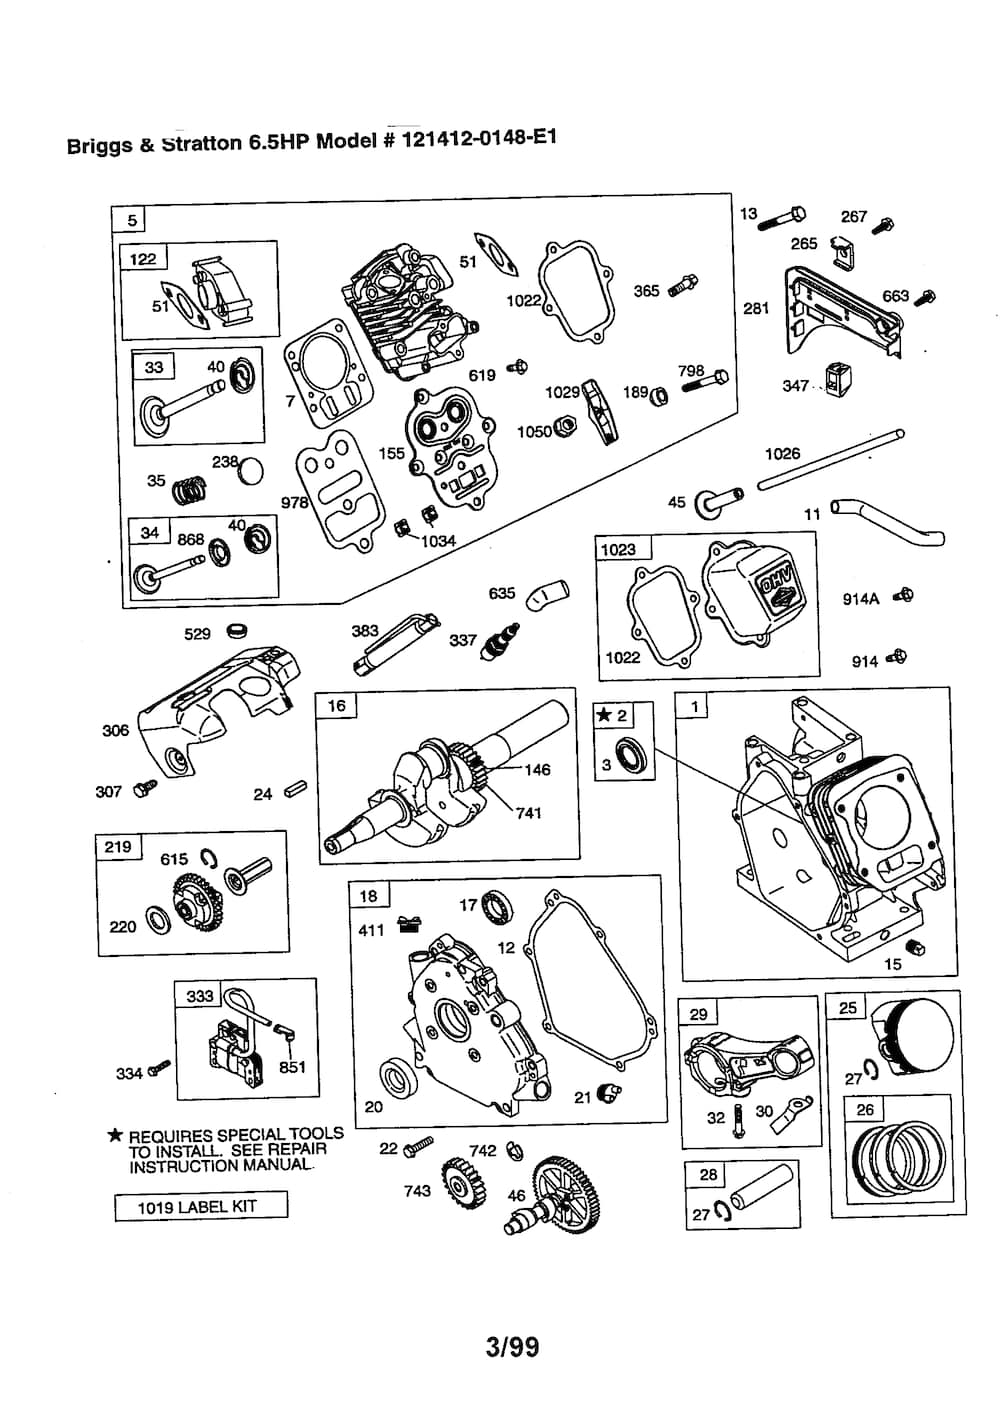 Briggs & Stratton 6.5 Hp Engine Parts | Model 1214120148E1 | Sears within Briggs And Stratton Generator Parts Diagram